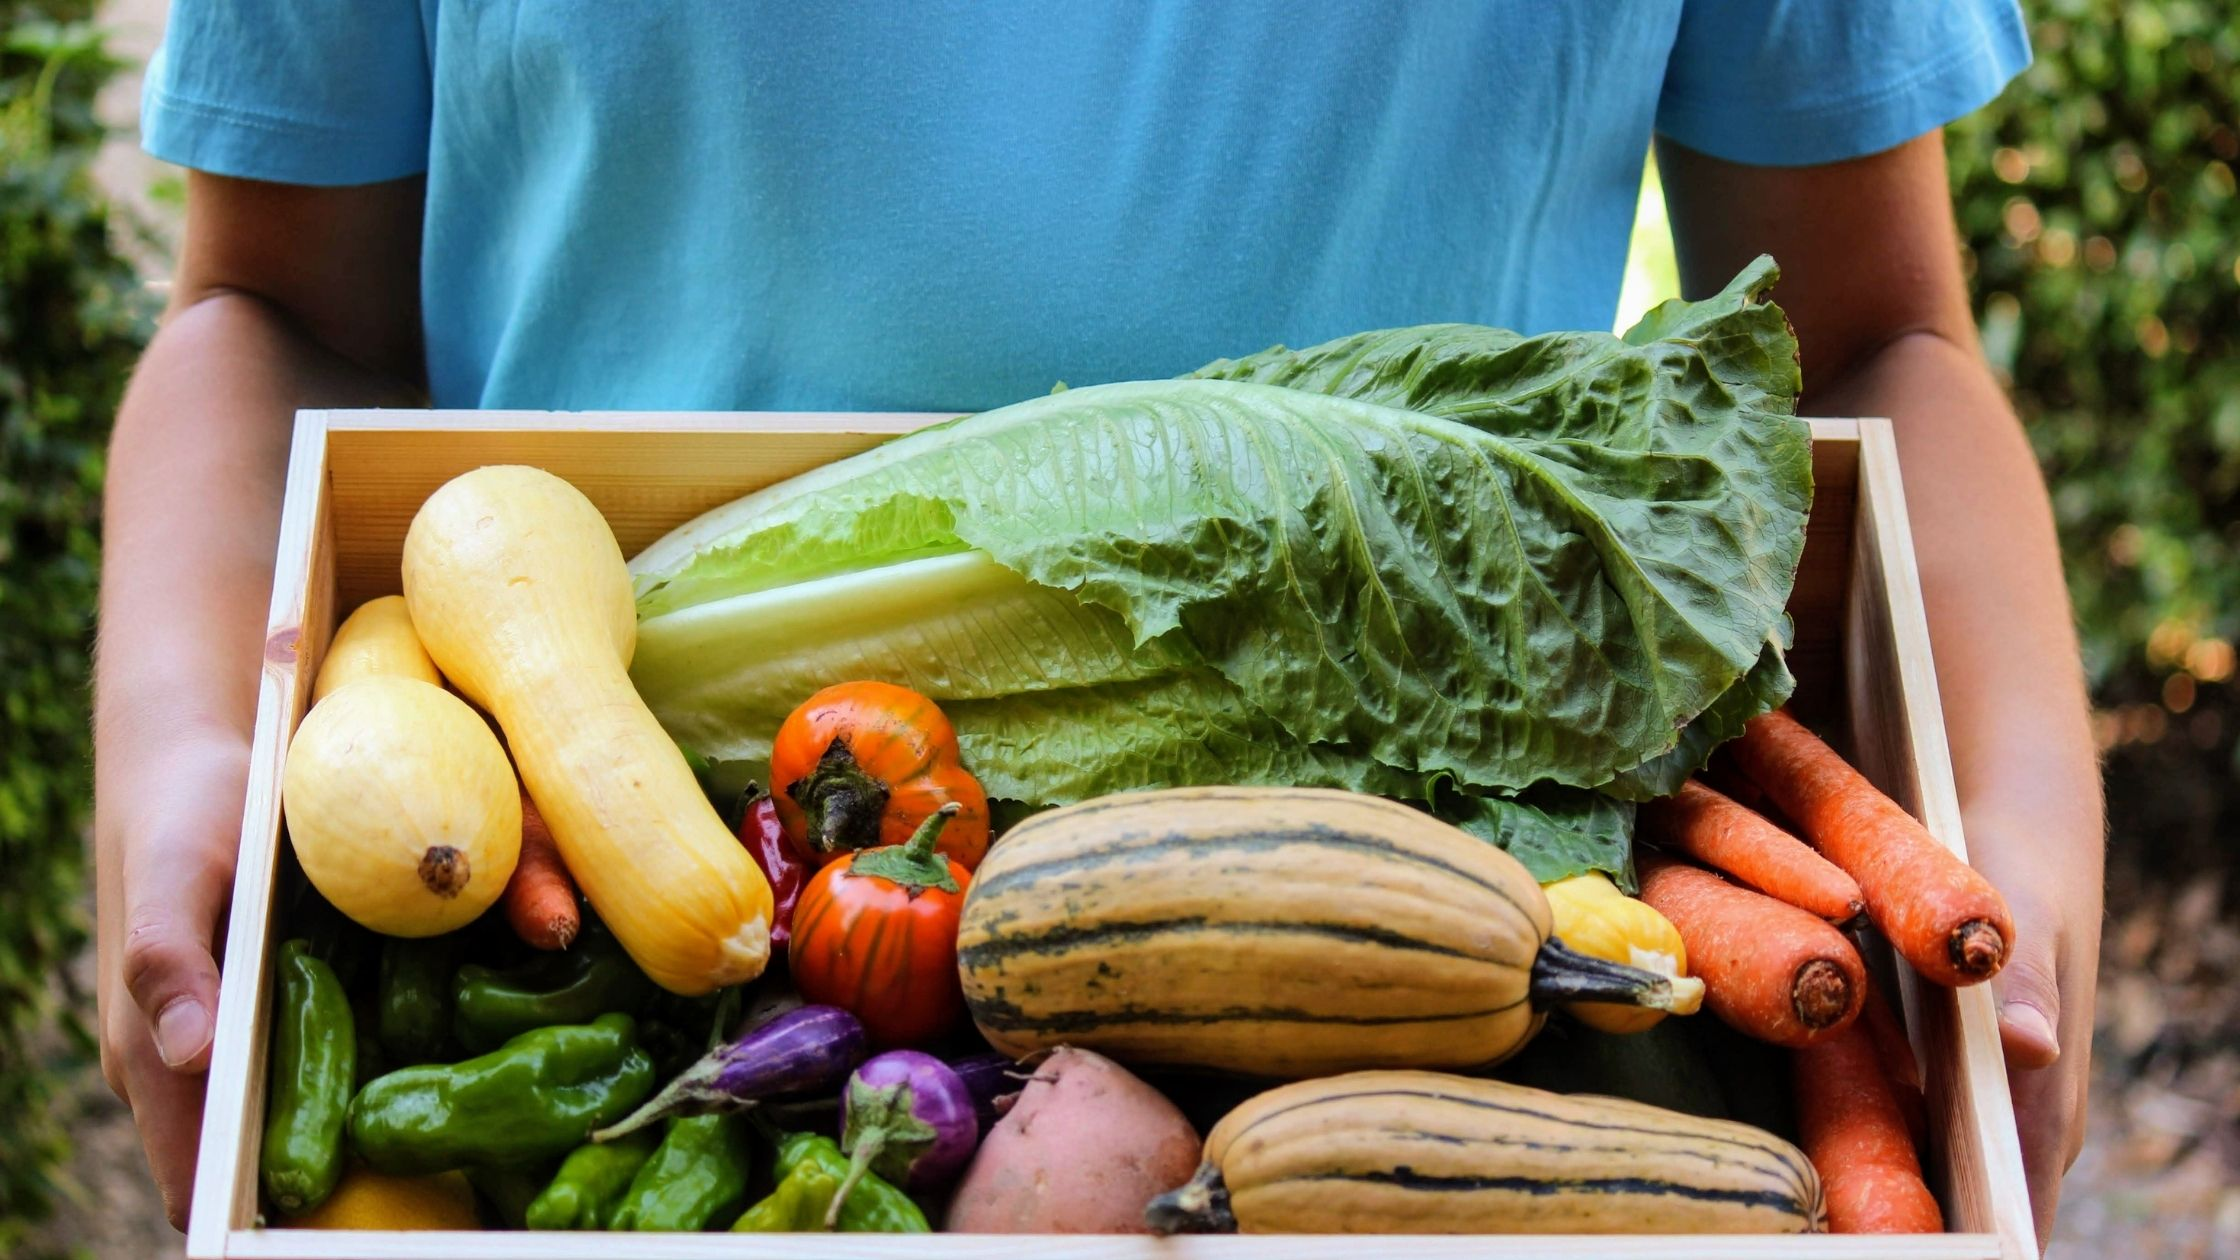 Don't have time to shop local or eat more veggies? A CSA is what you need.